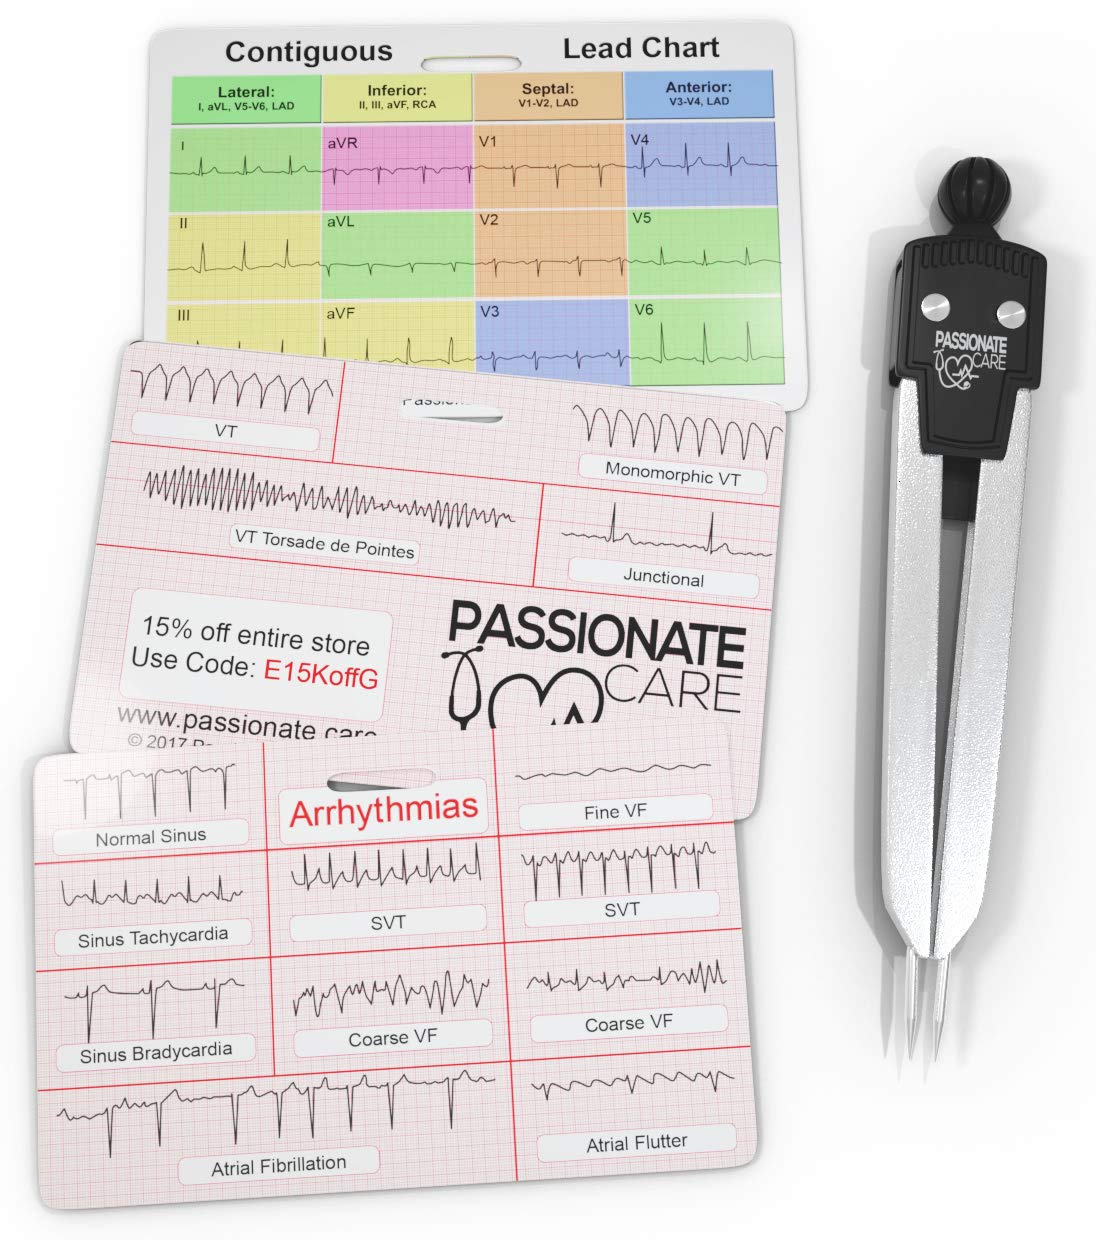 EKG Calipers Plus ECG Rhythm Interpretation Badge Cards. The Perfect Divider Combination. It Is The Ultimate 12 Lead Cheat Sheet For Nurses and Medical Students Alike. Caliper and Flash Cards. Ideal by Passionate Care